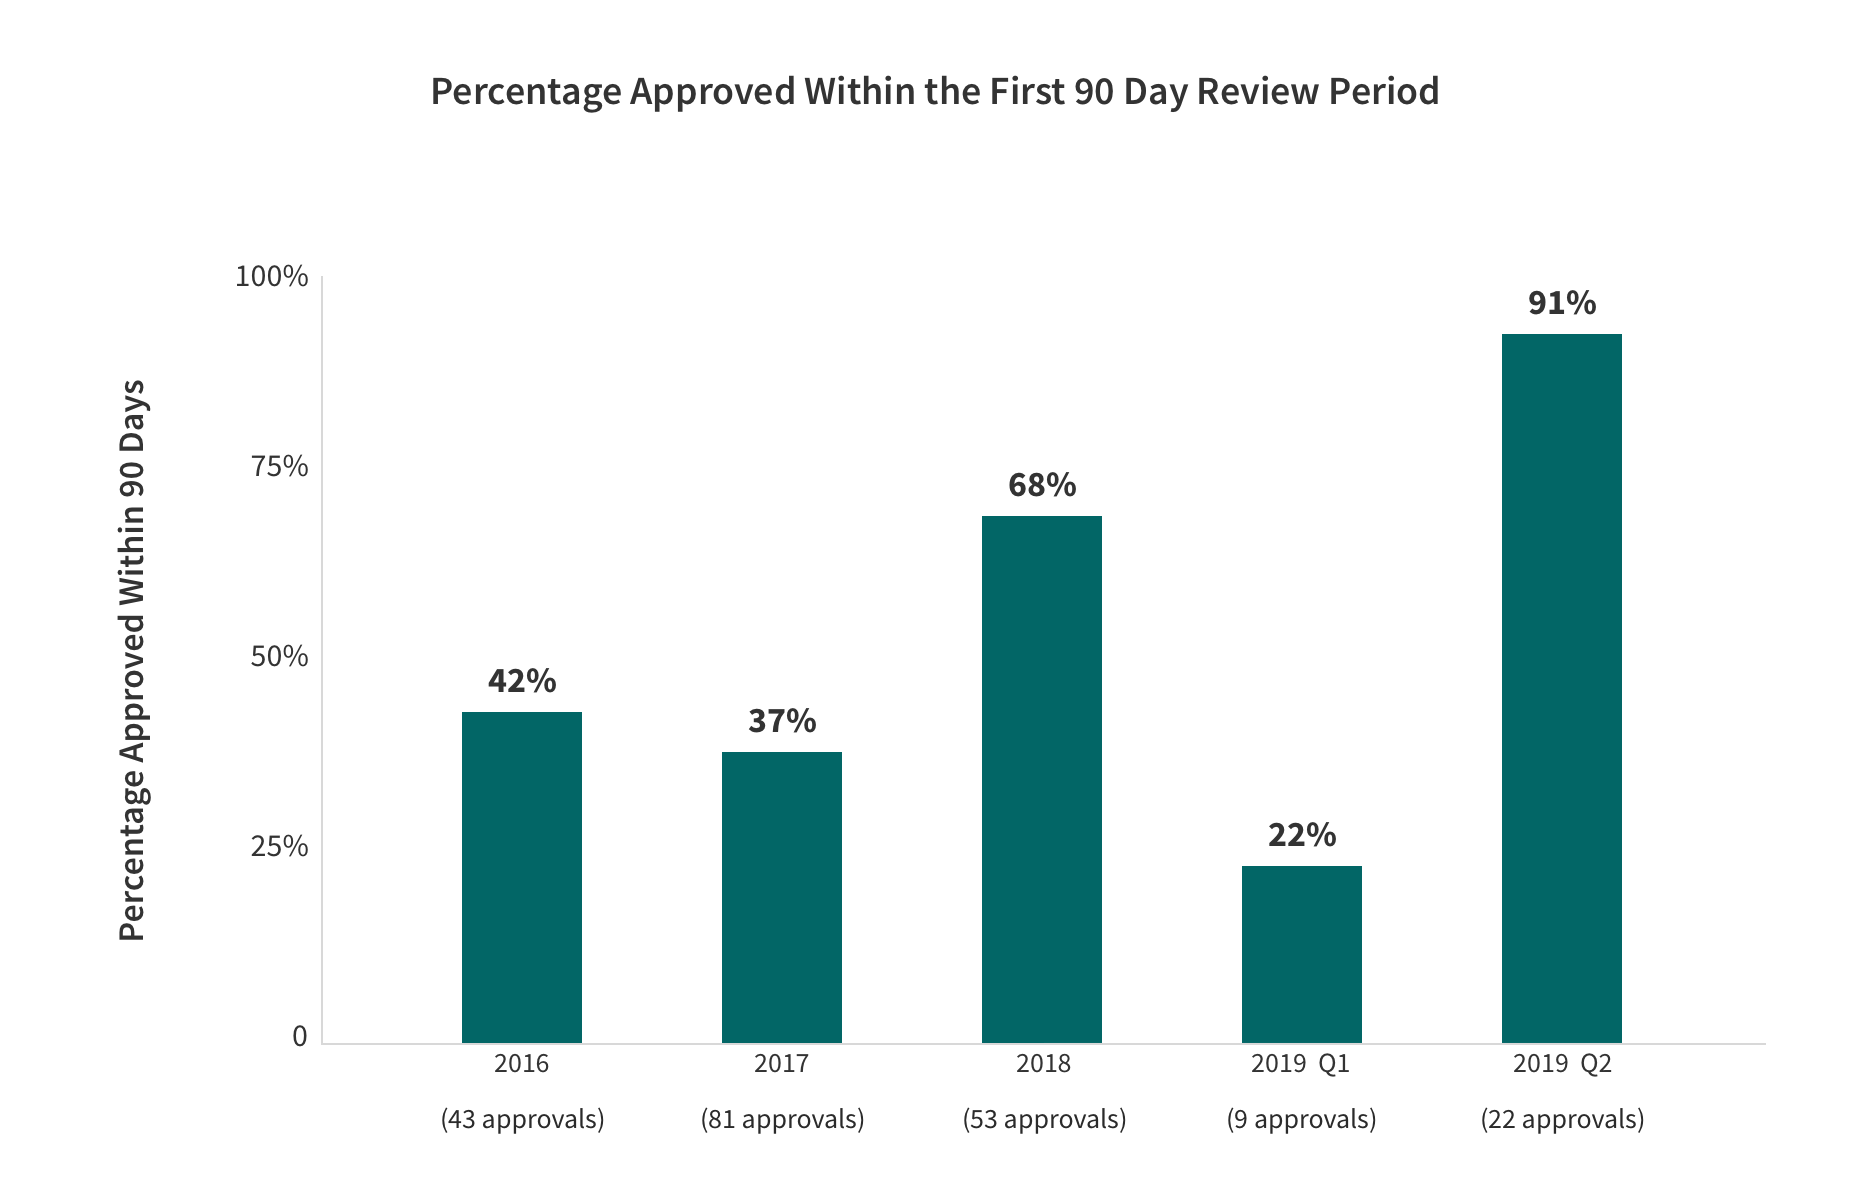 1915(c) Waiver Renewals - Percentage Approved within the First 90 Day Review Period Bar Graph with the categories and values. Described in table below.